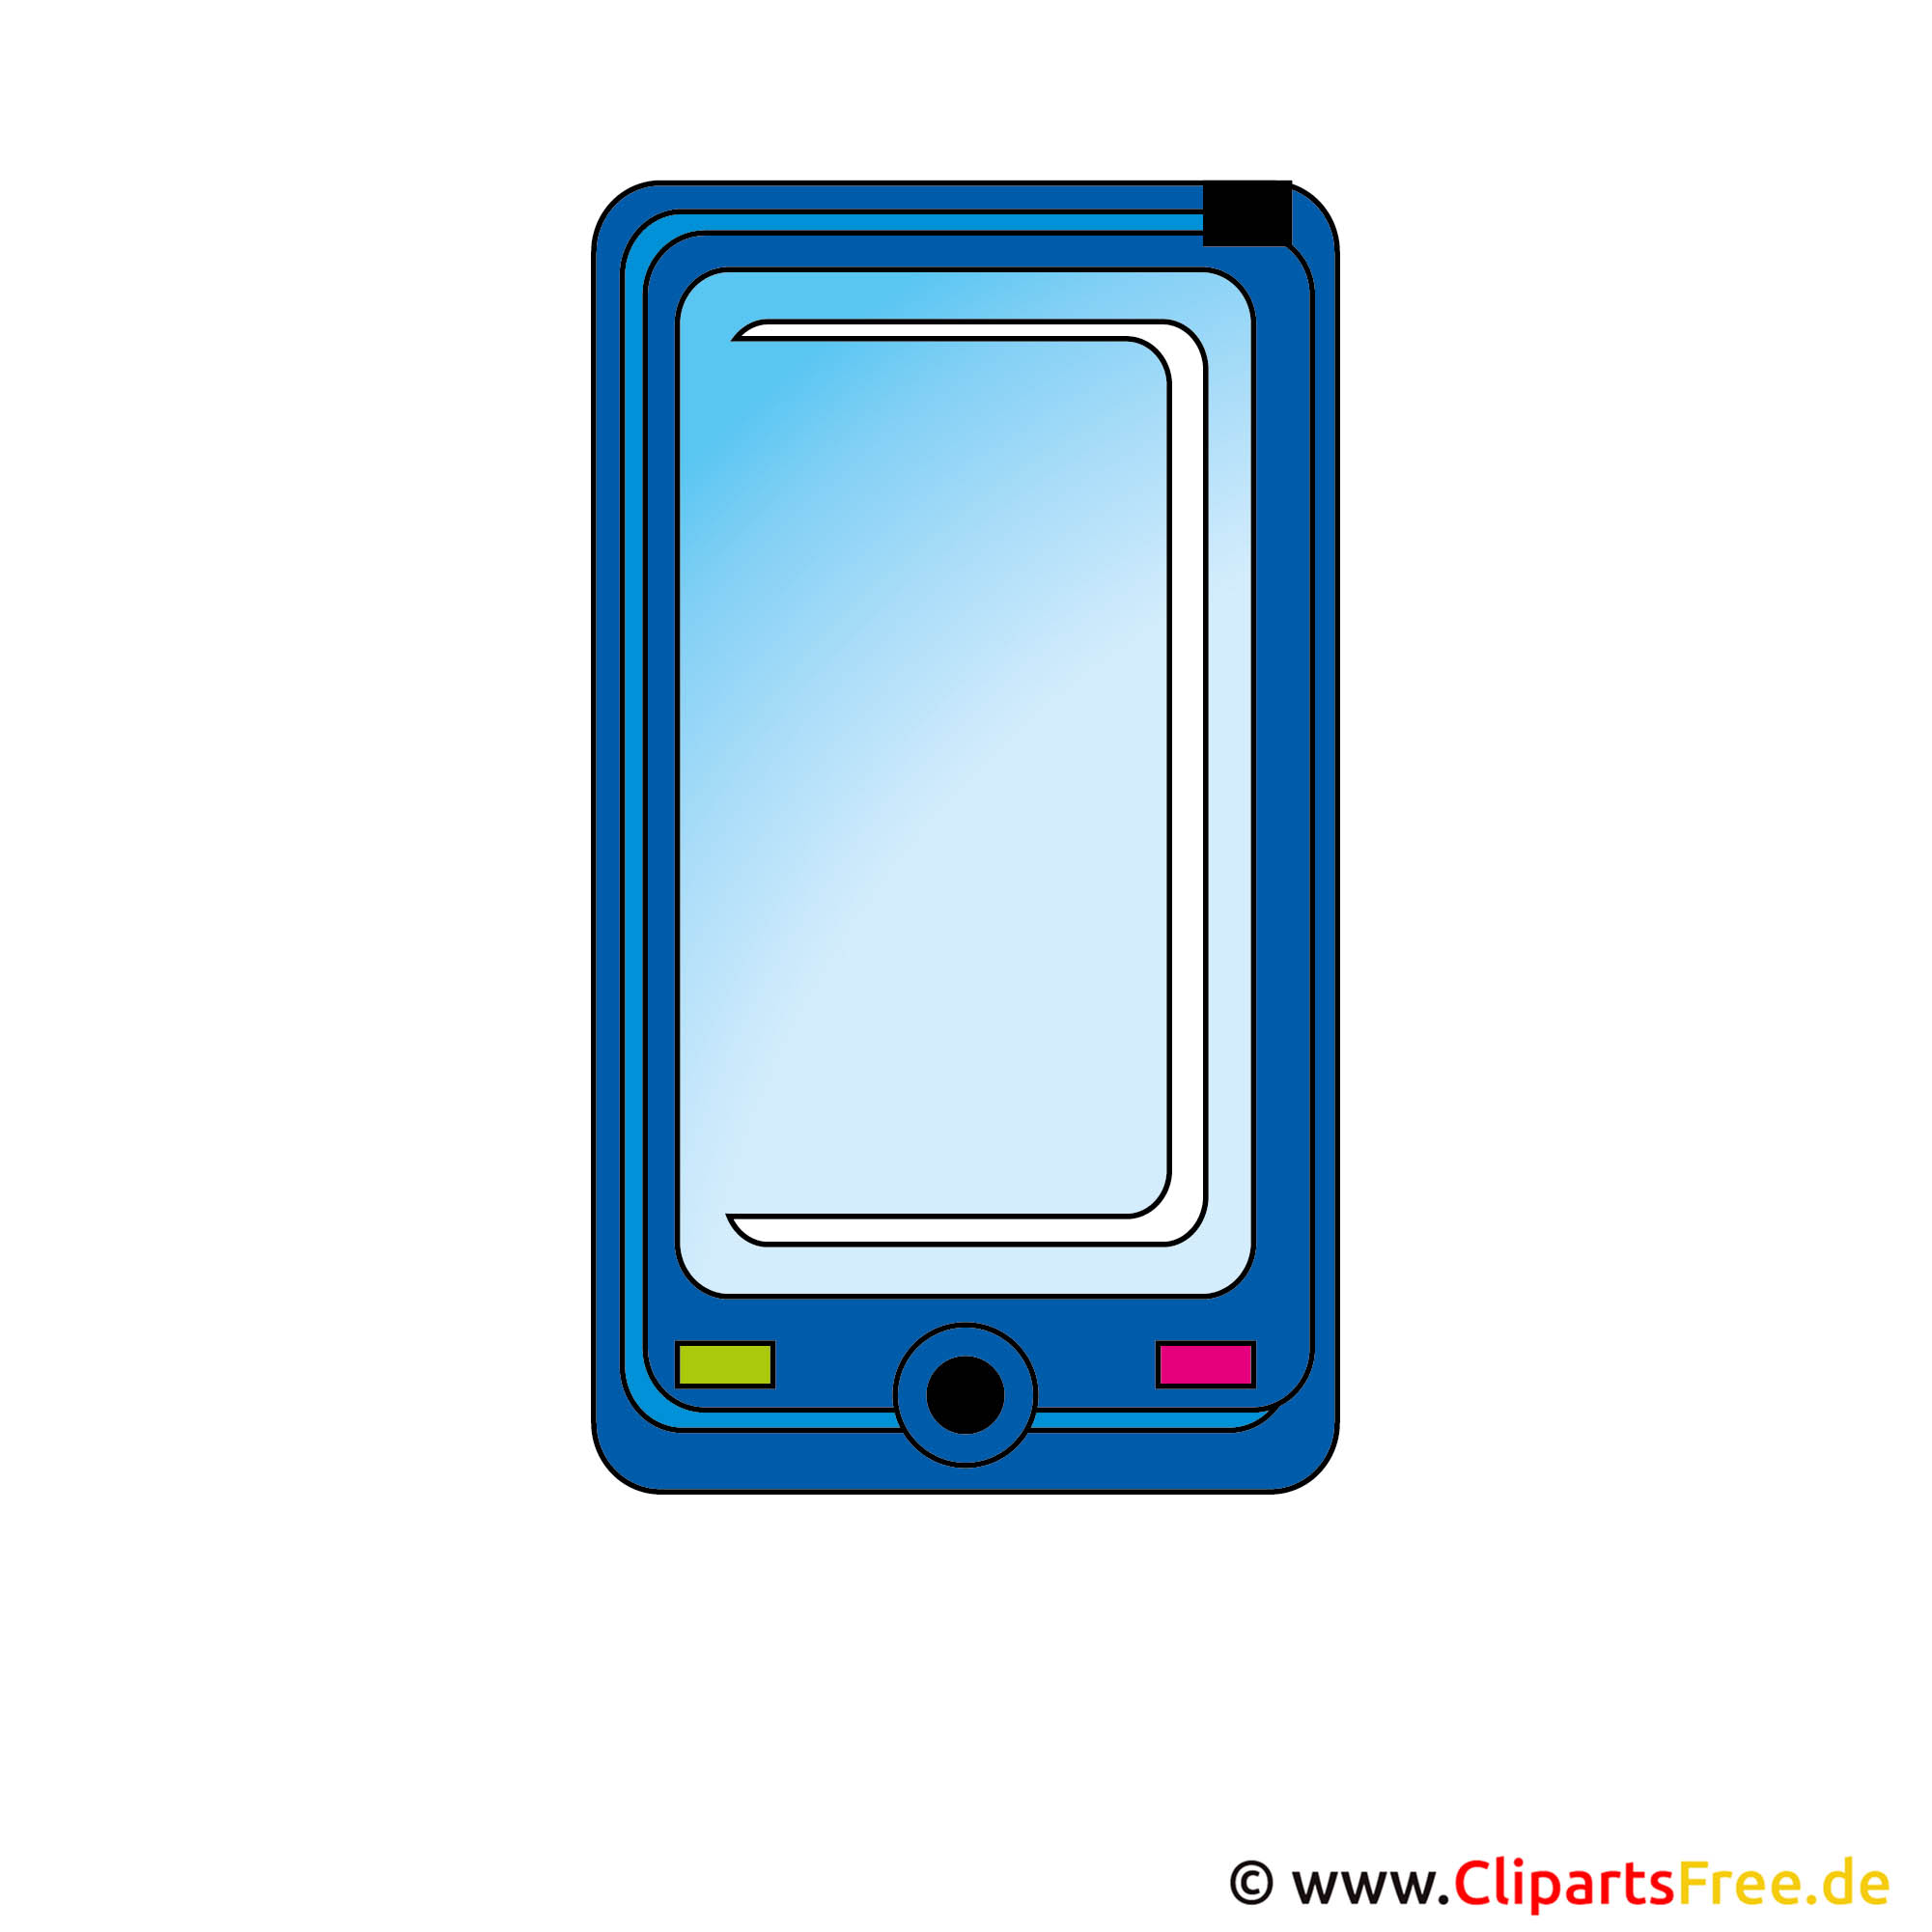 Clipart Handy, Smartphone, Device